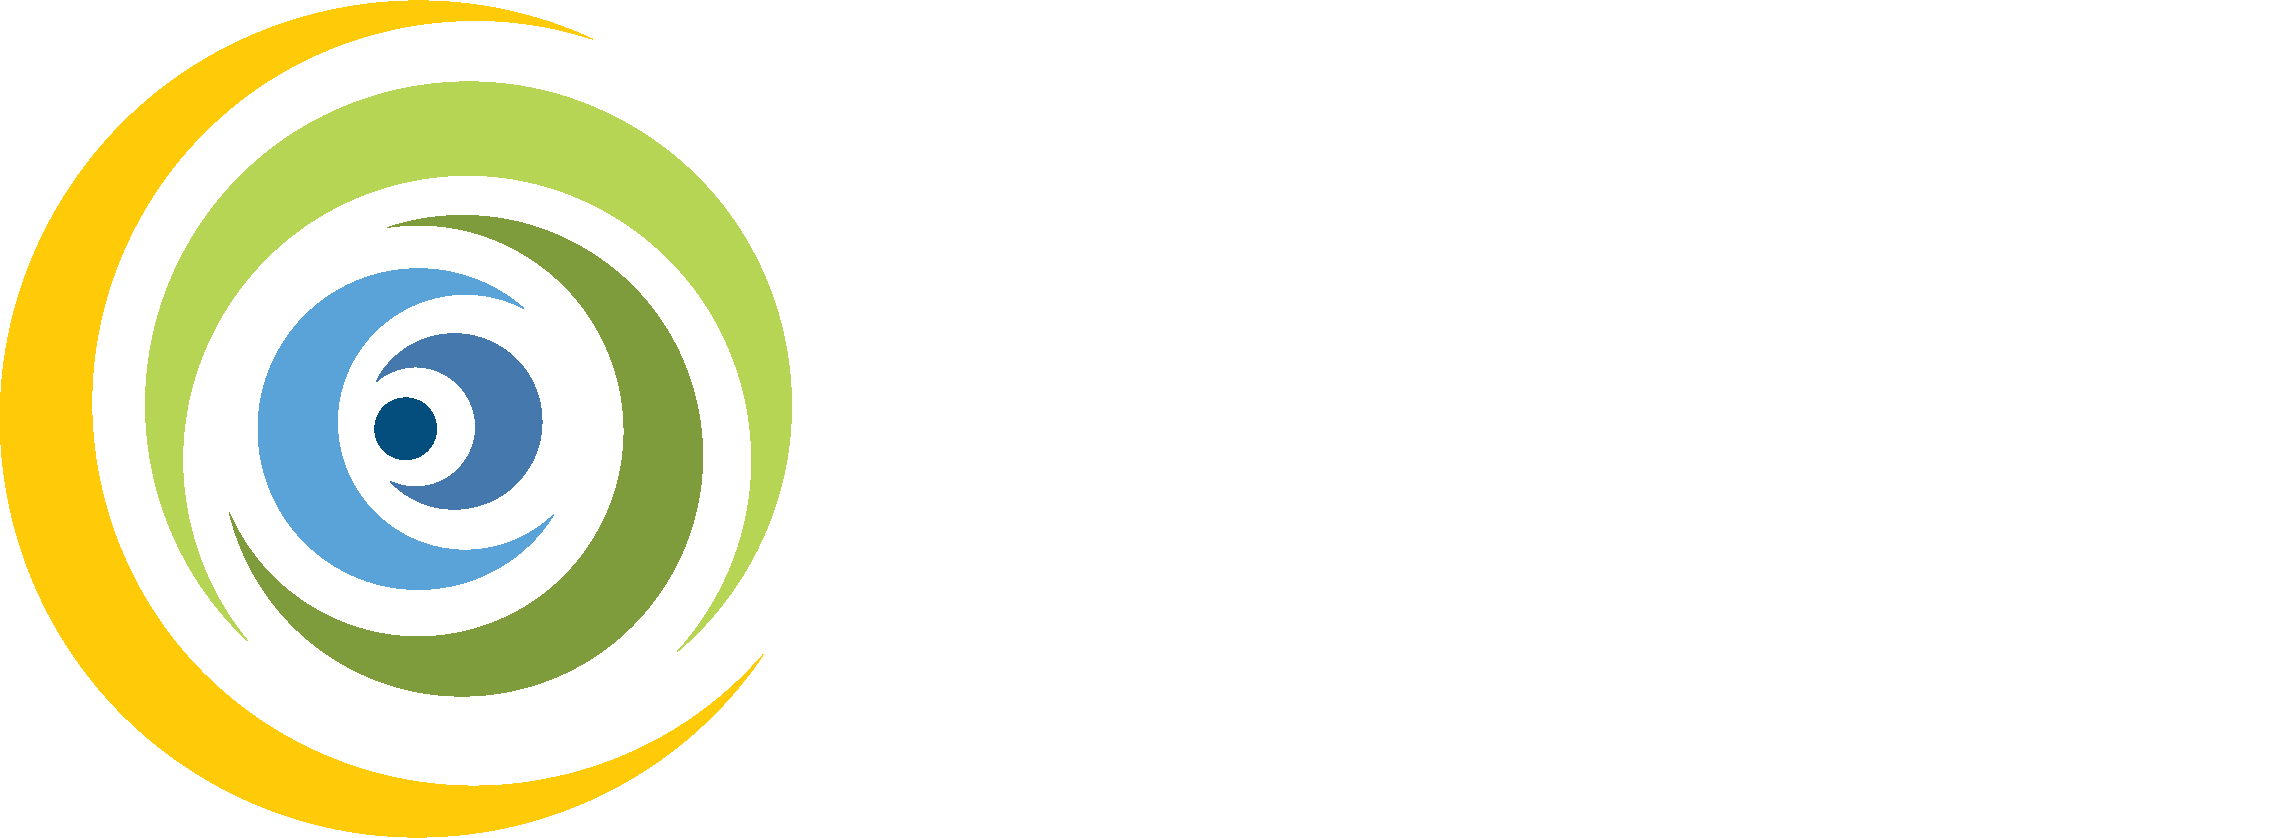 Cascades Casino Langley | Hotel | Convention Centre | Gaming Restaurants Sports Live Entertainment | Langley BC Canada